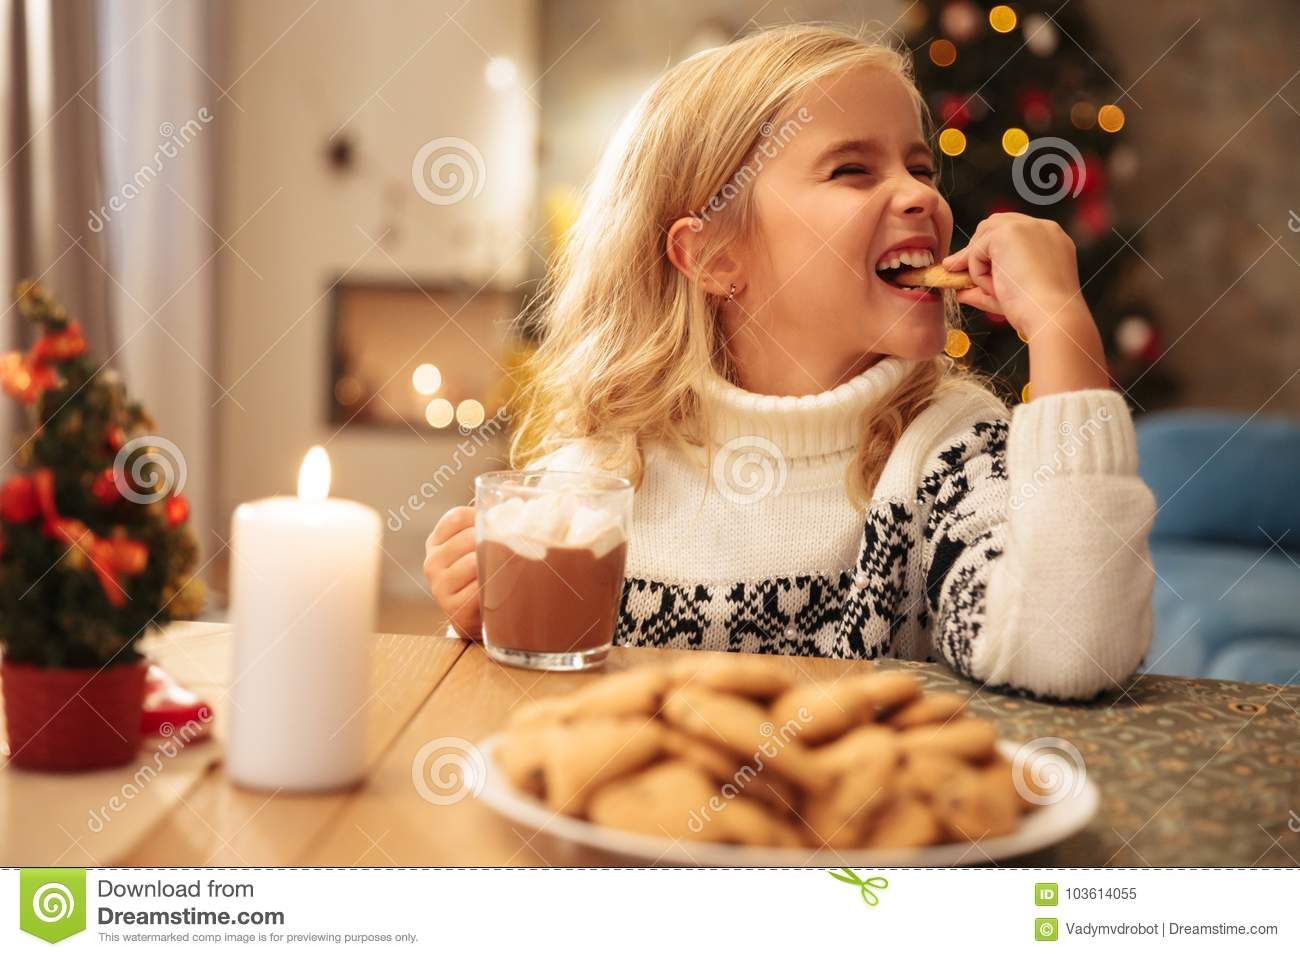 Cute little girl drinking cacao and eating cookie at home